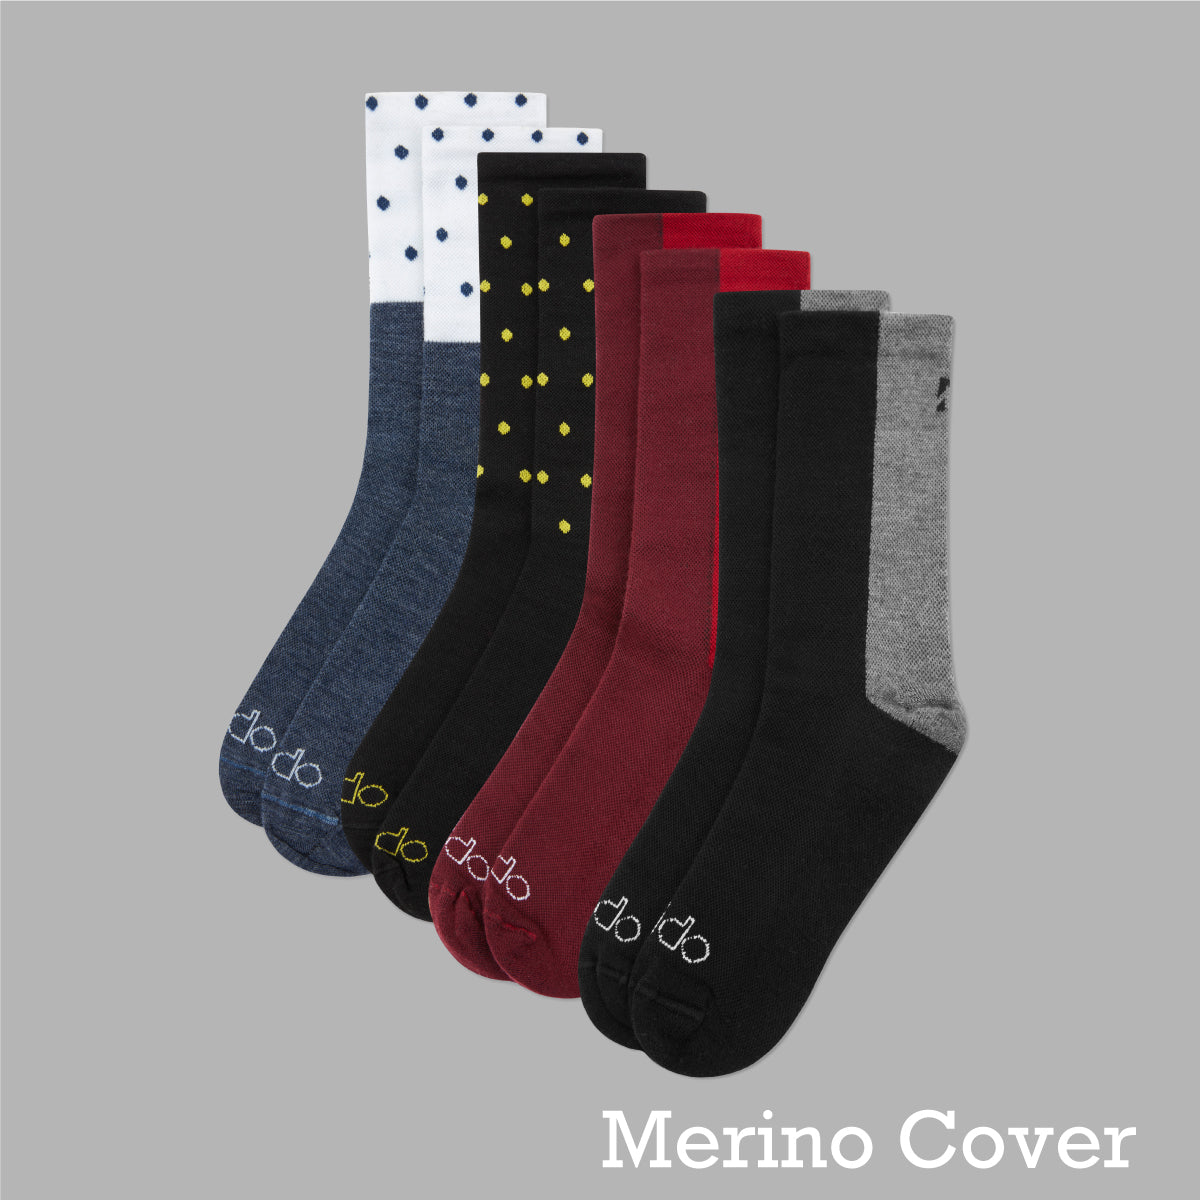 Merino Socks for Christmas Gifts